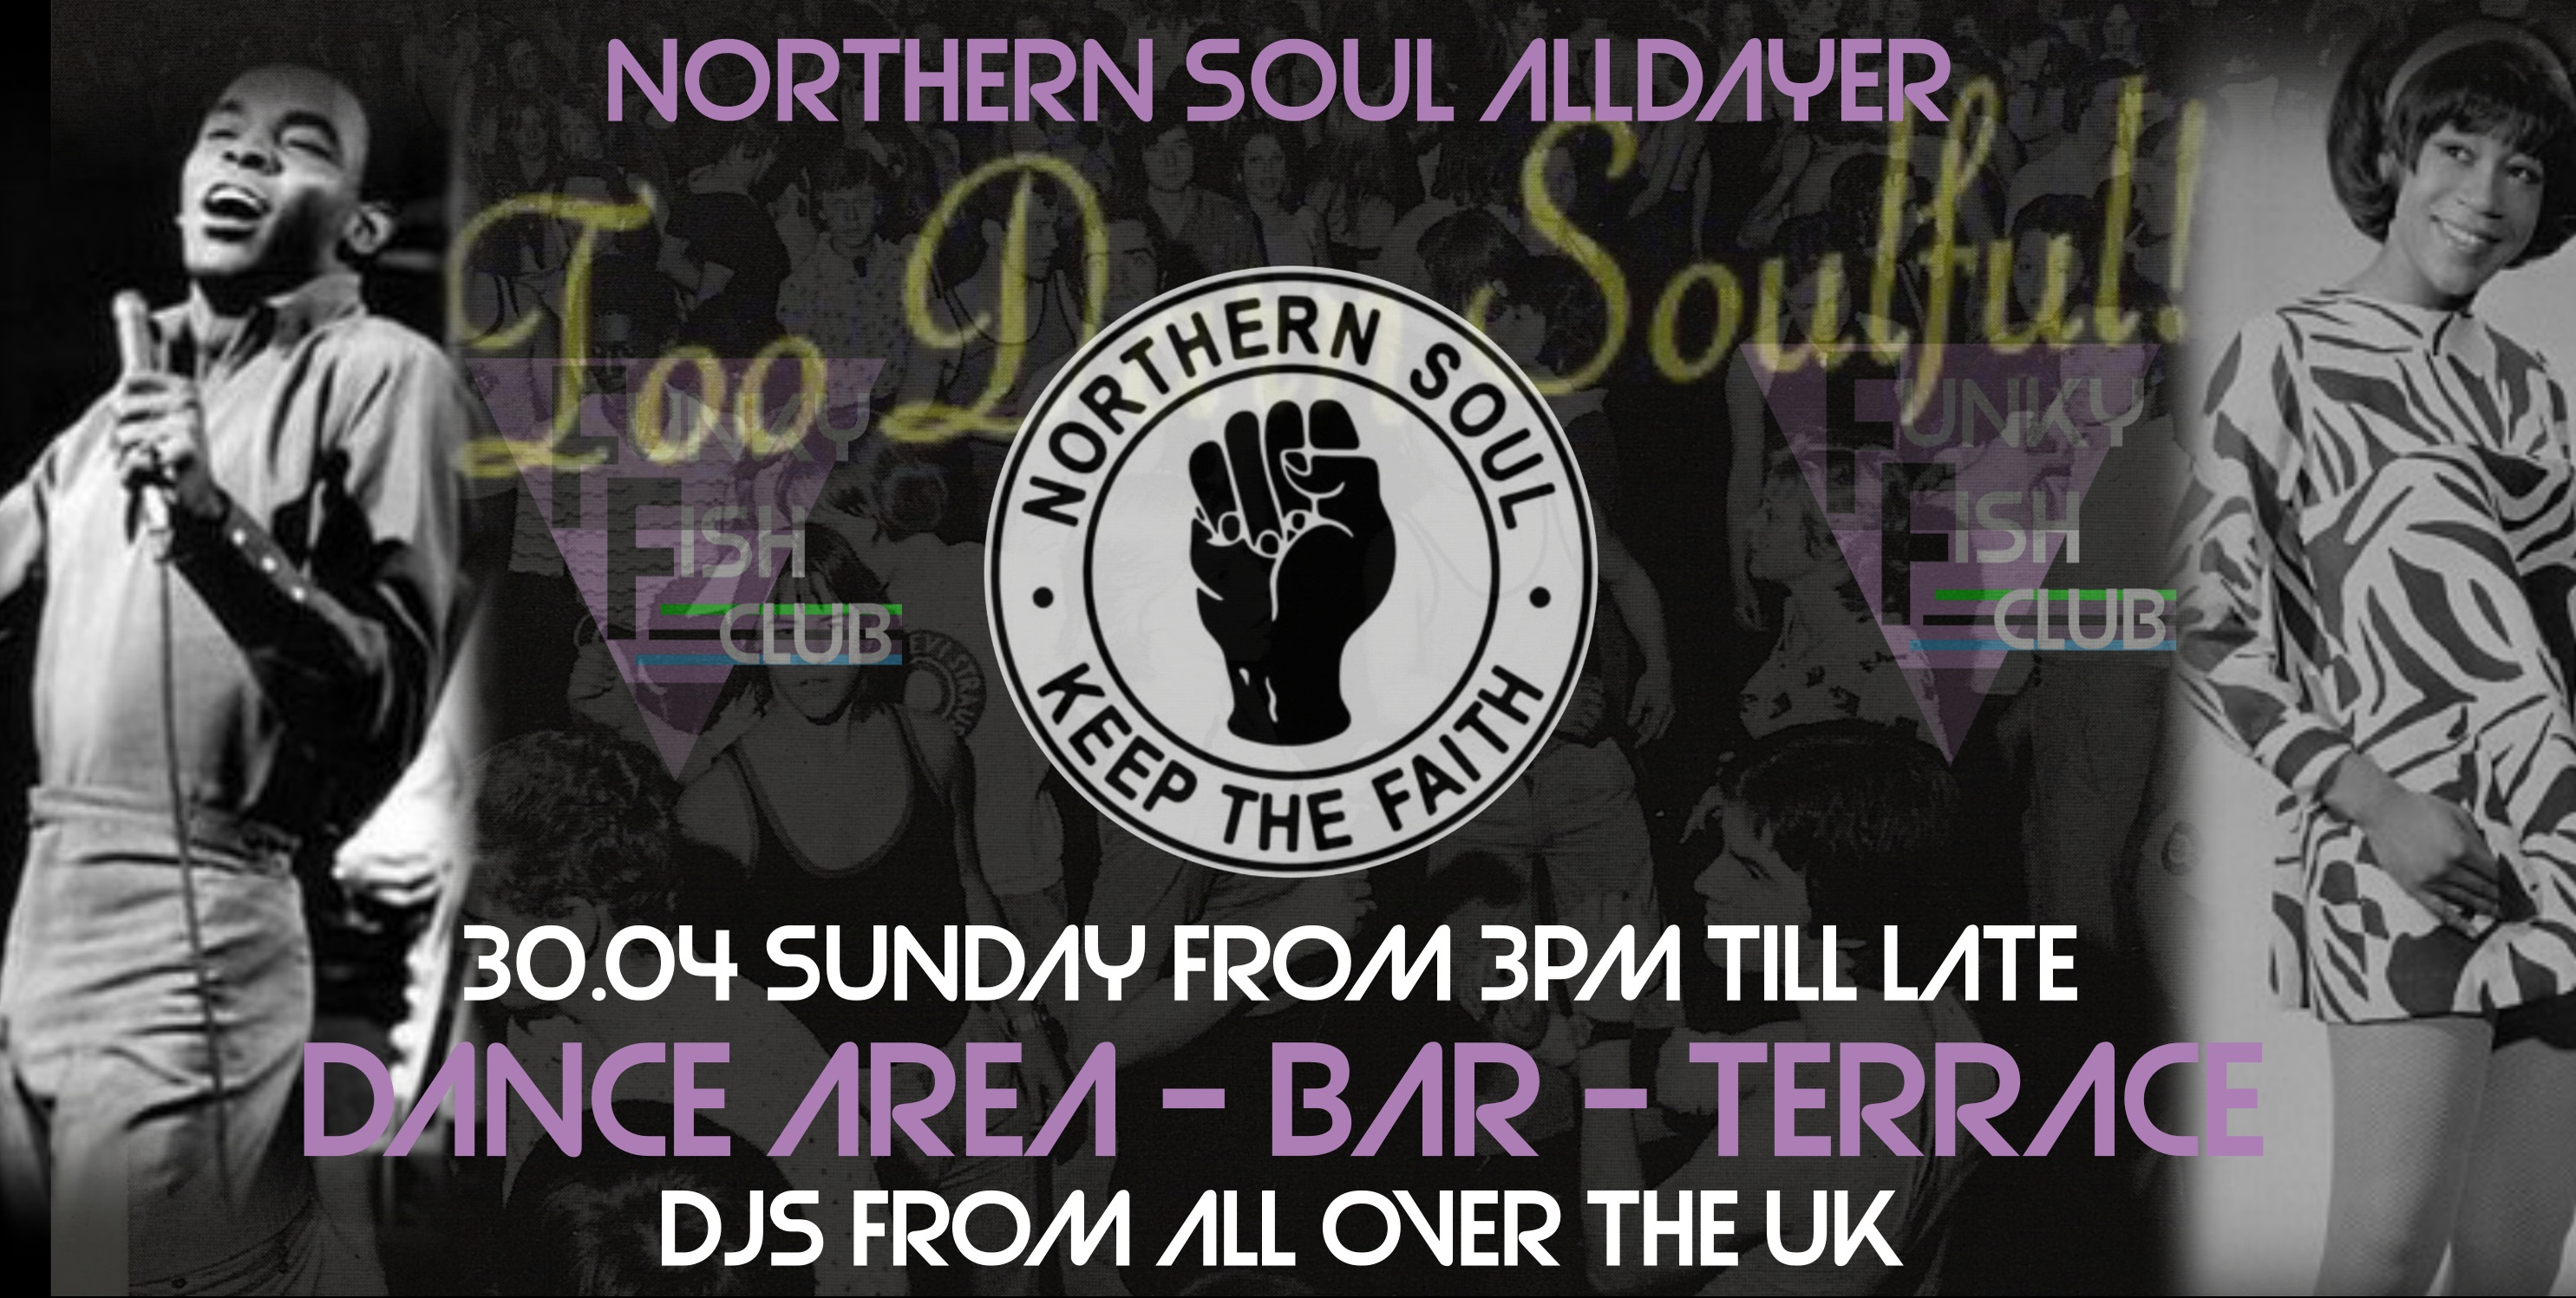 SUNDAY - NORTHERN SOUL ALL DAYER